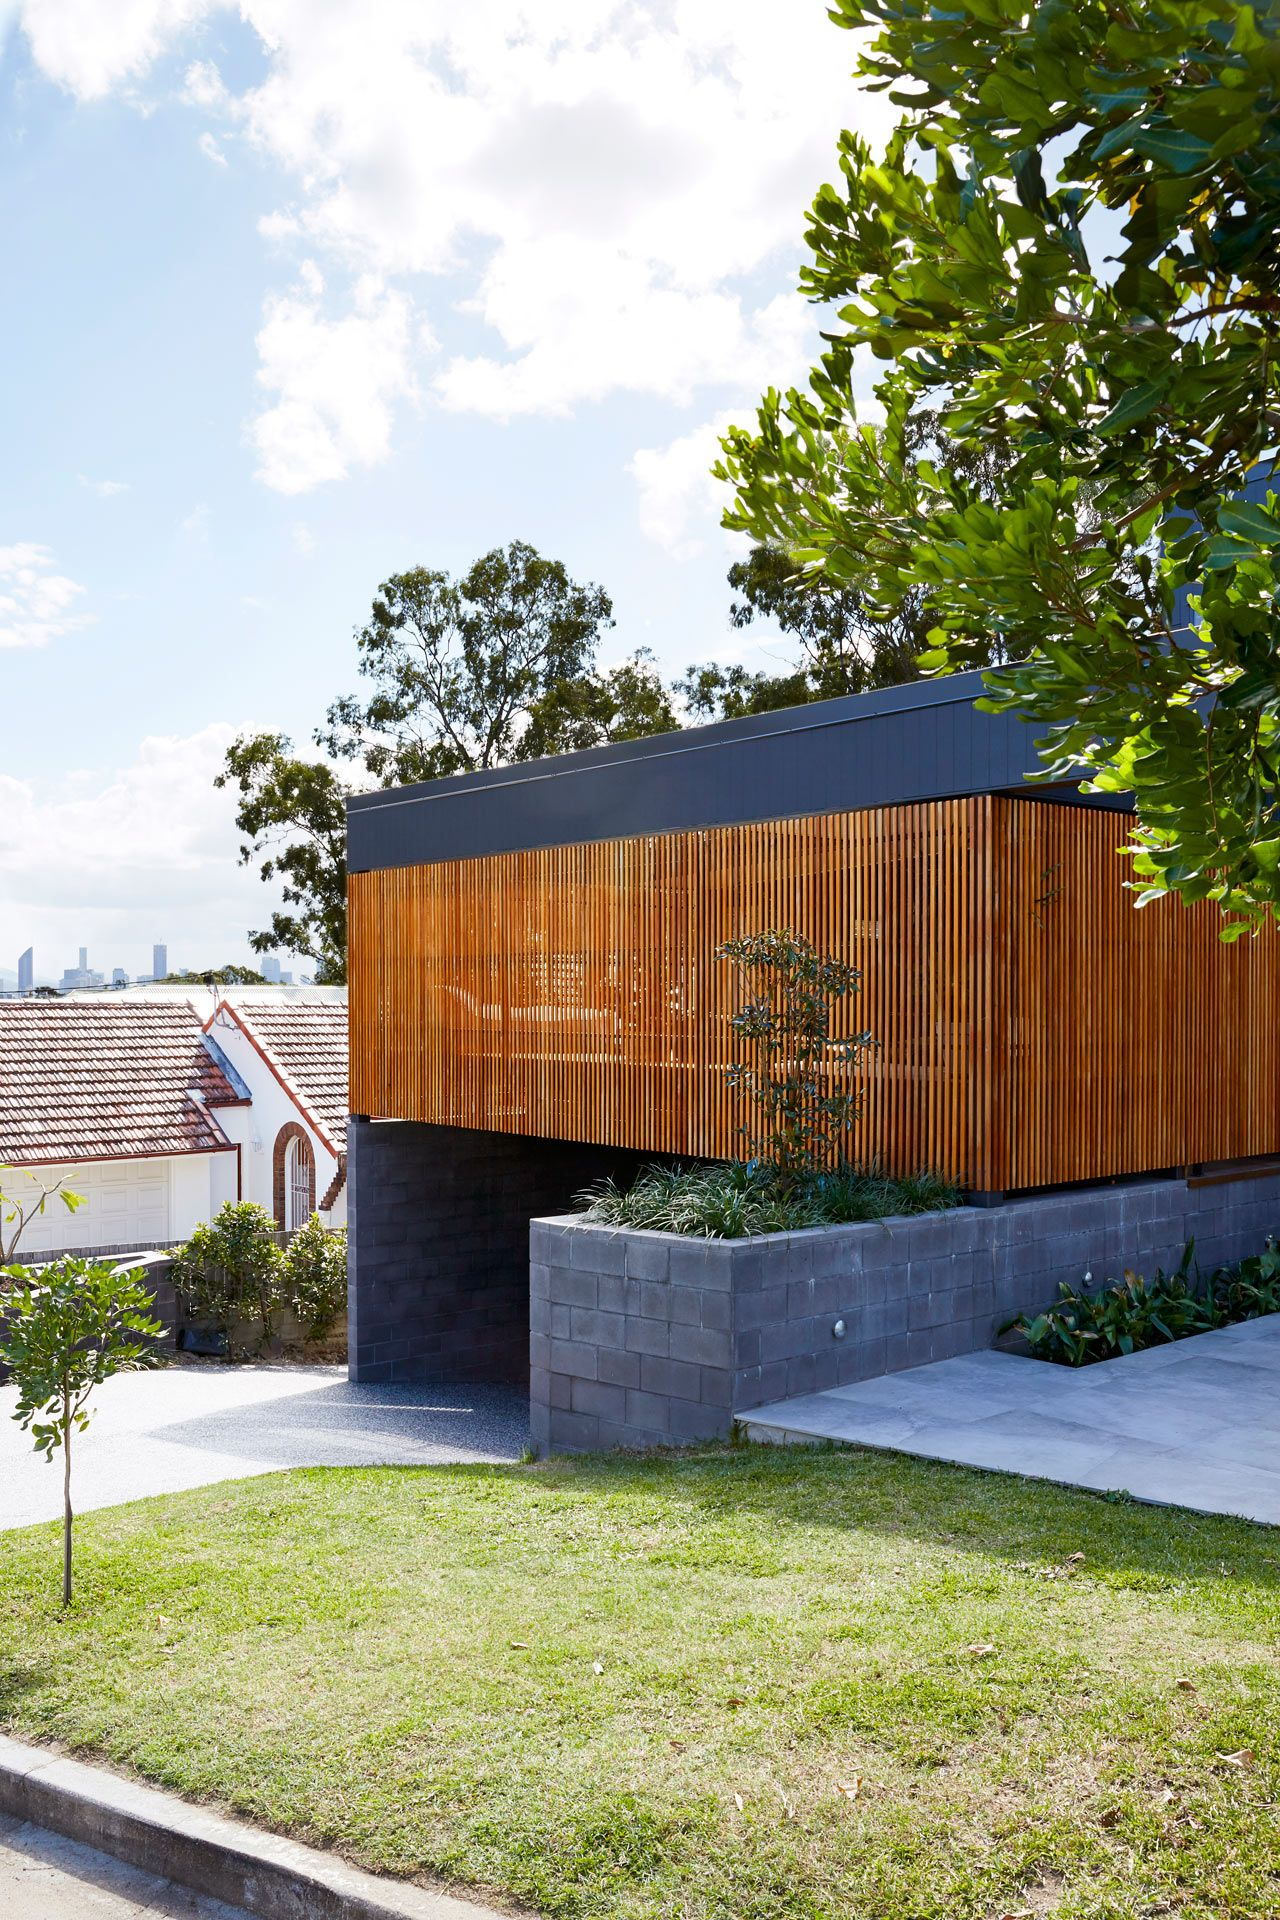 Httpsdesign Milkcomthe Coorparoo House